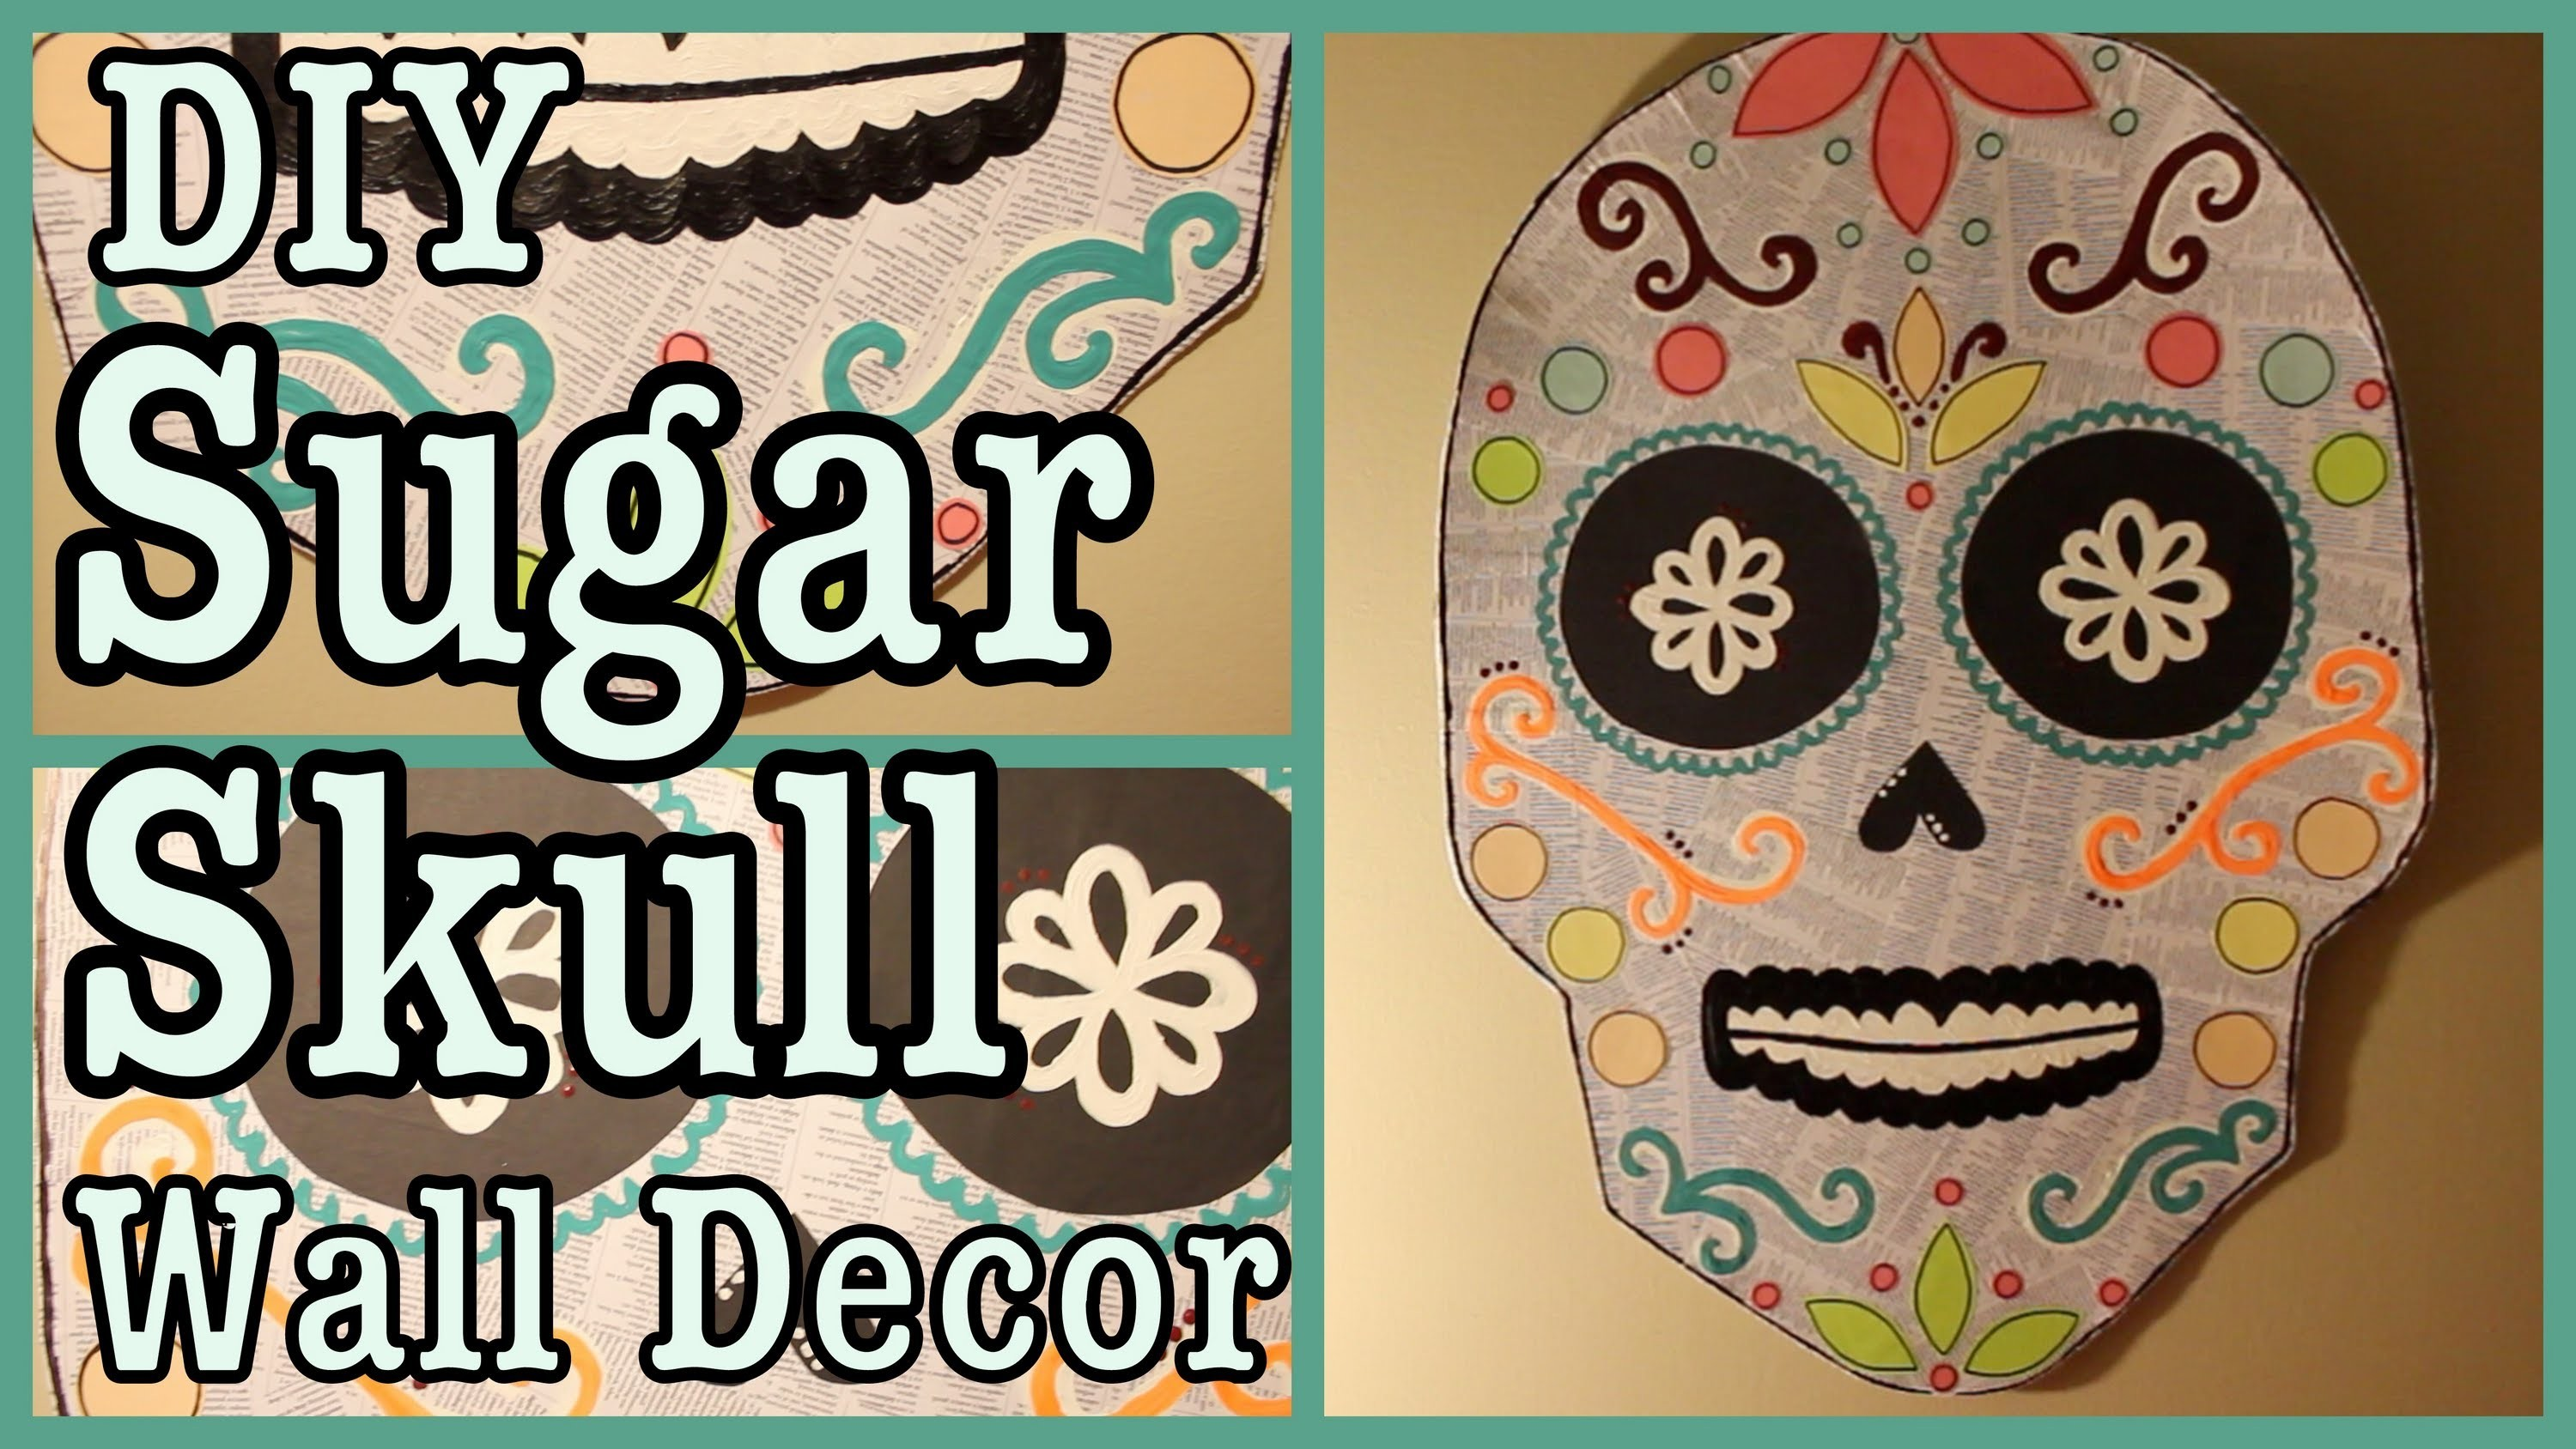 DIY: Sugar Skull Wall Decor